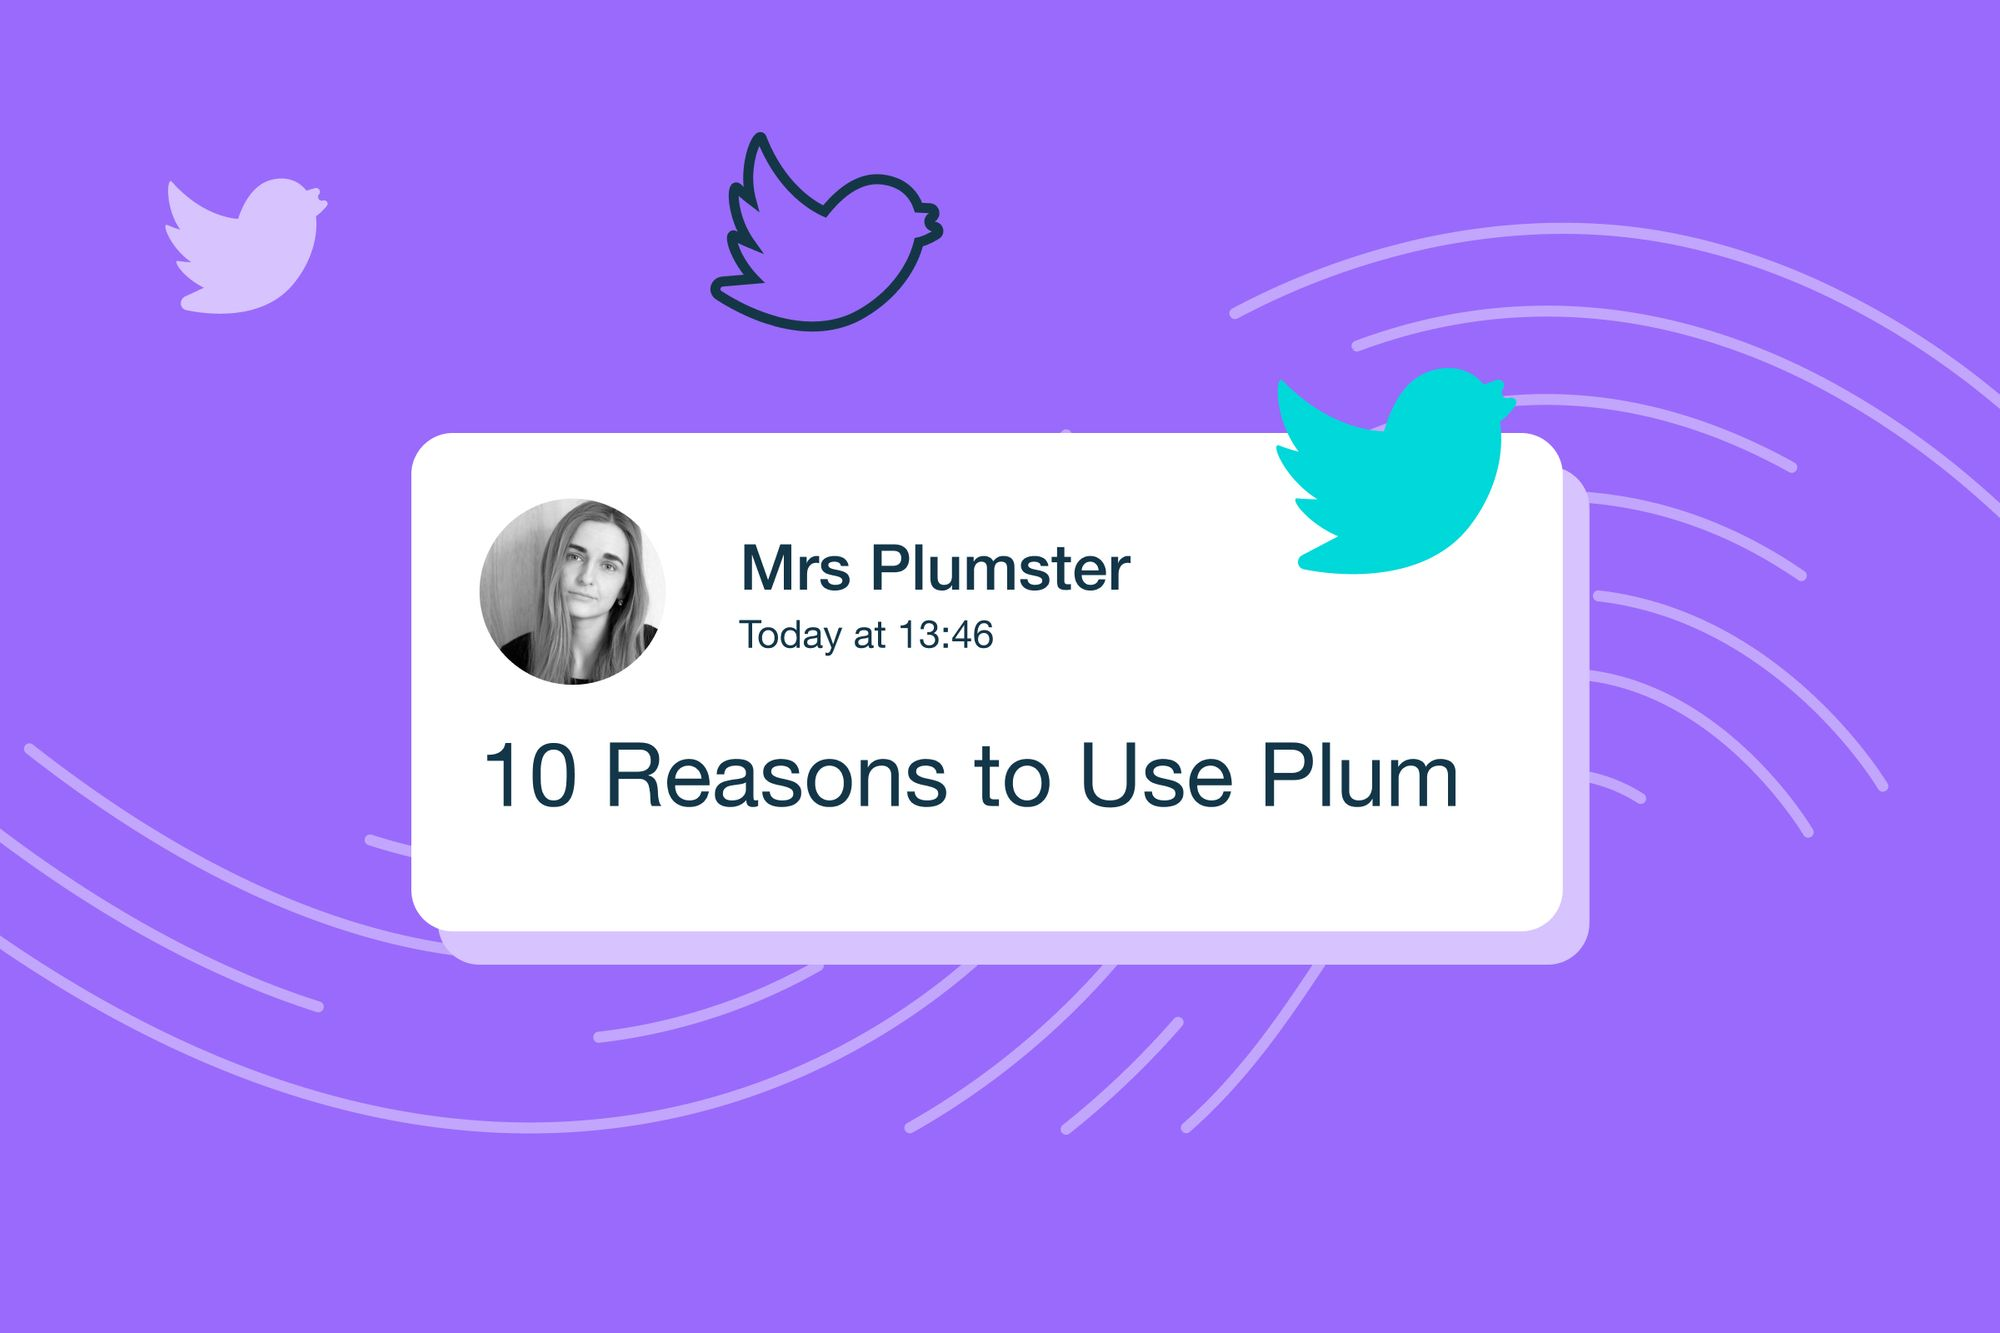 10 Reasons You Should Use Plum